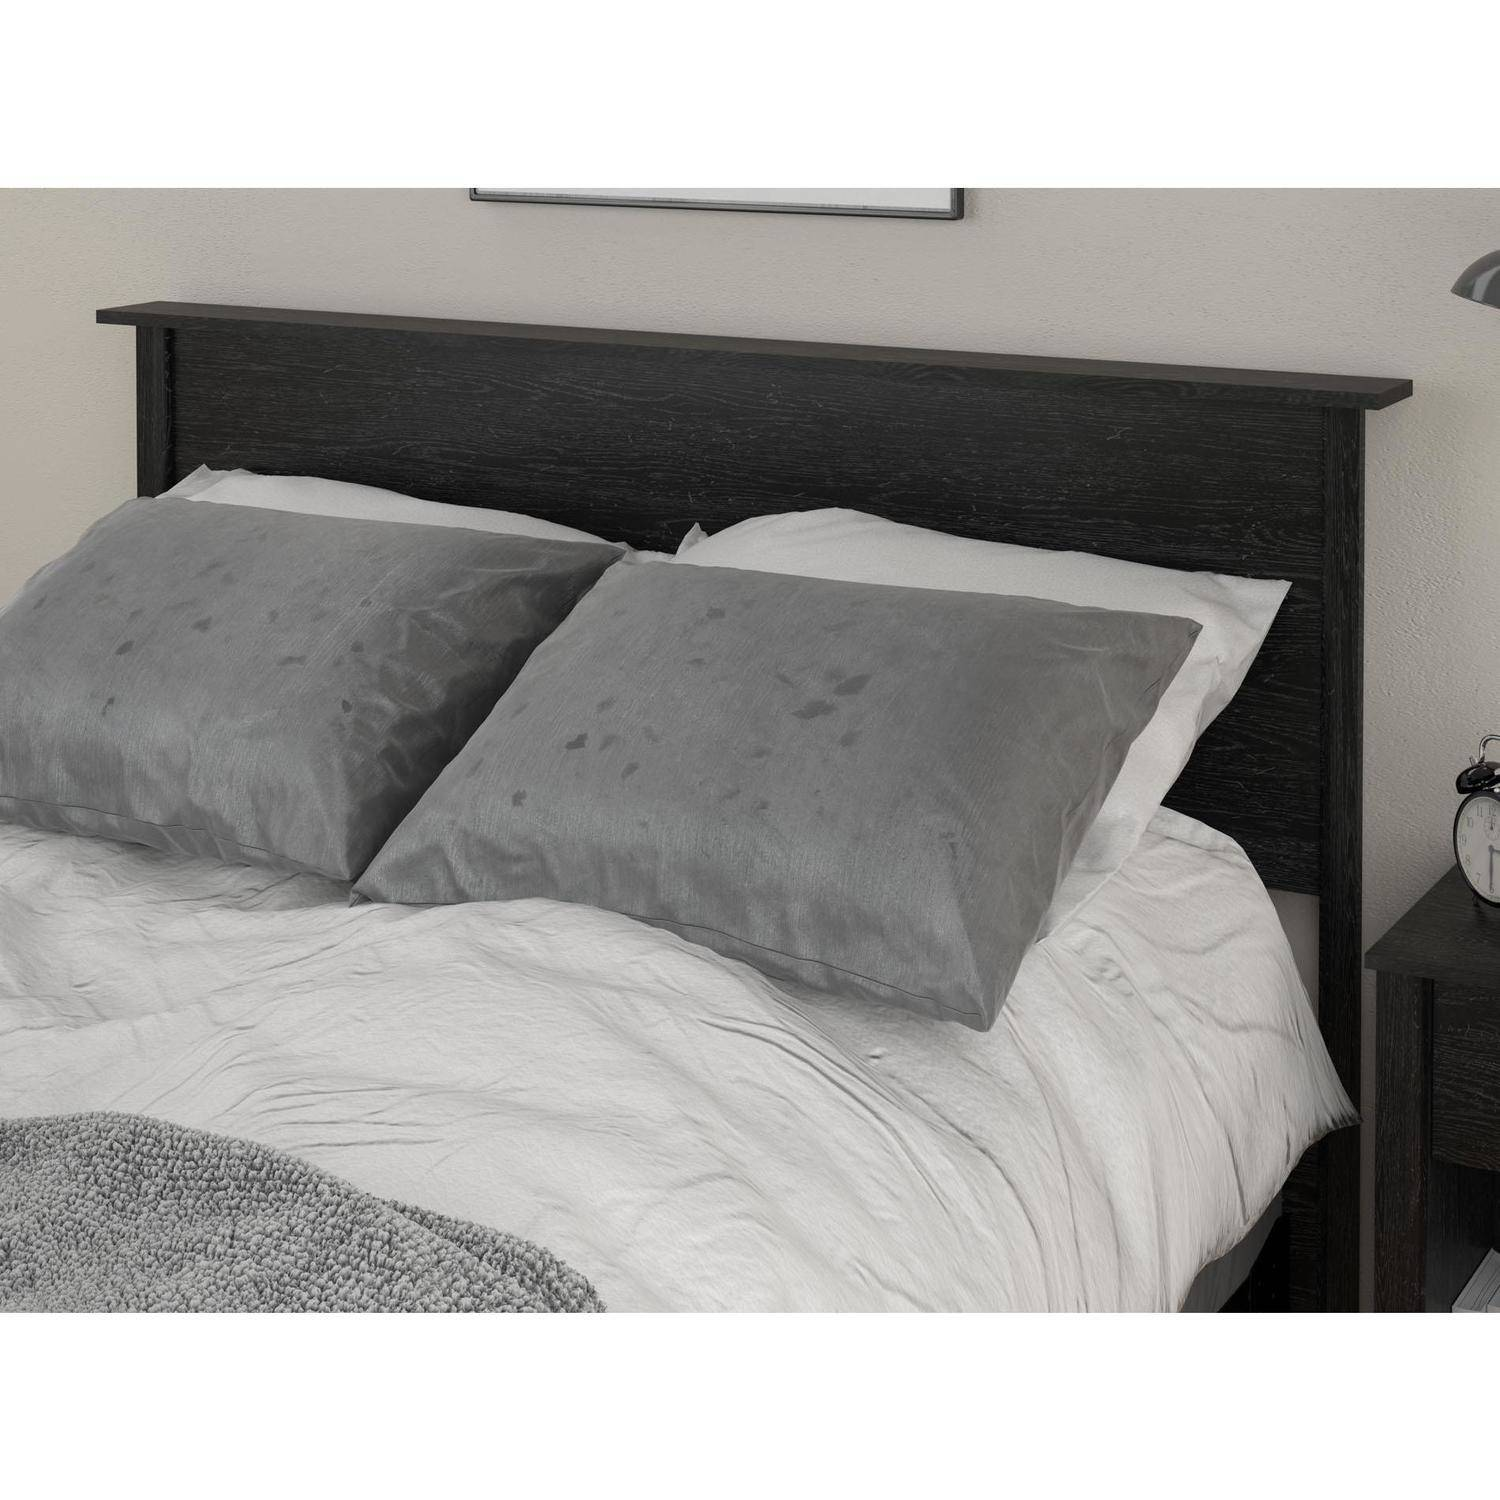 Mainstays Transitional Headboard, Multiple Finishes